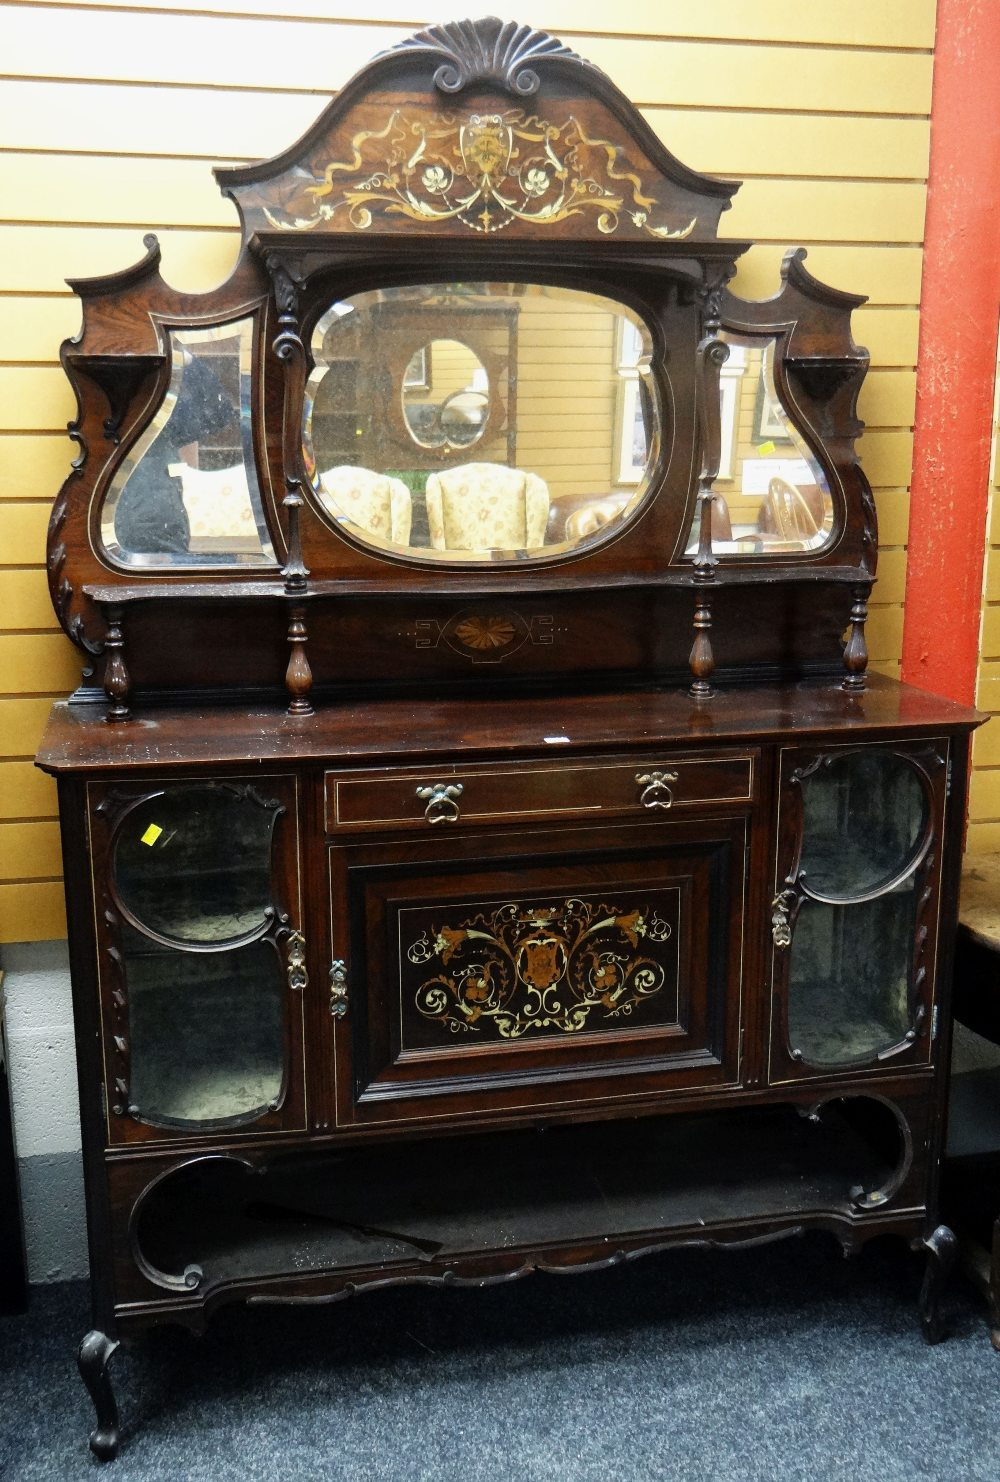 Lot 12 - TURN OF THE CENTURY ROSEWOOD & MARQUETRY CABINET SIDEBOARD composed of flanking glass cabinets,